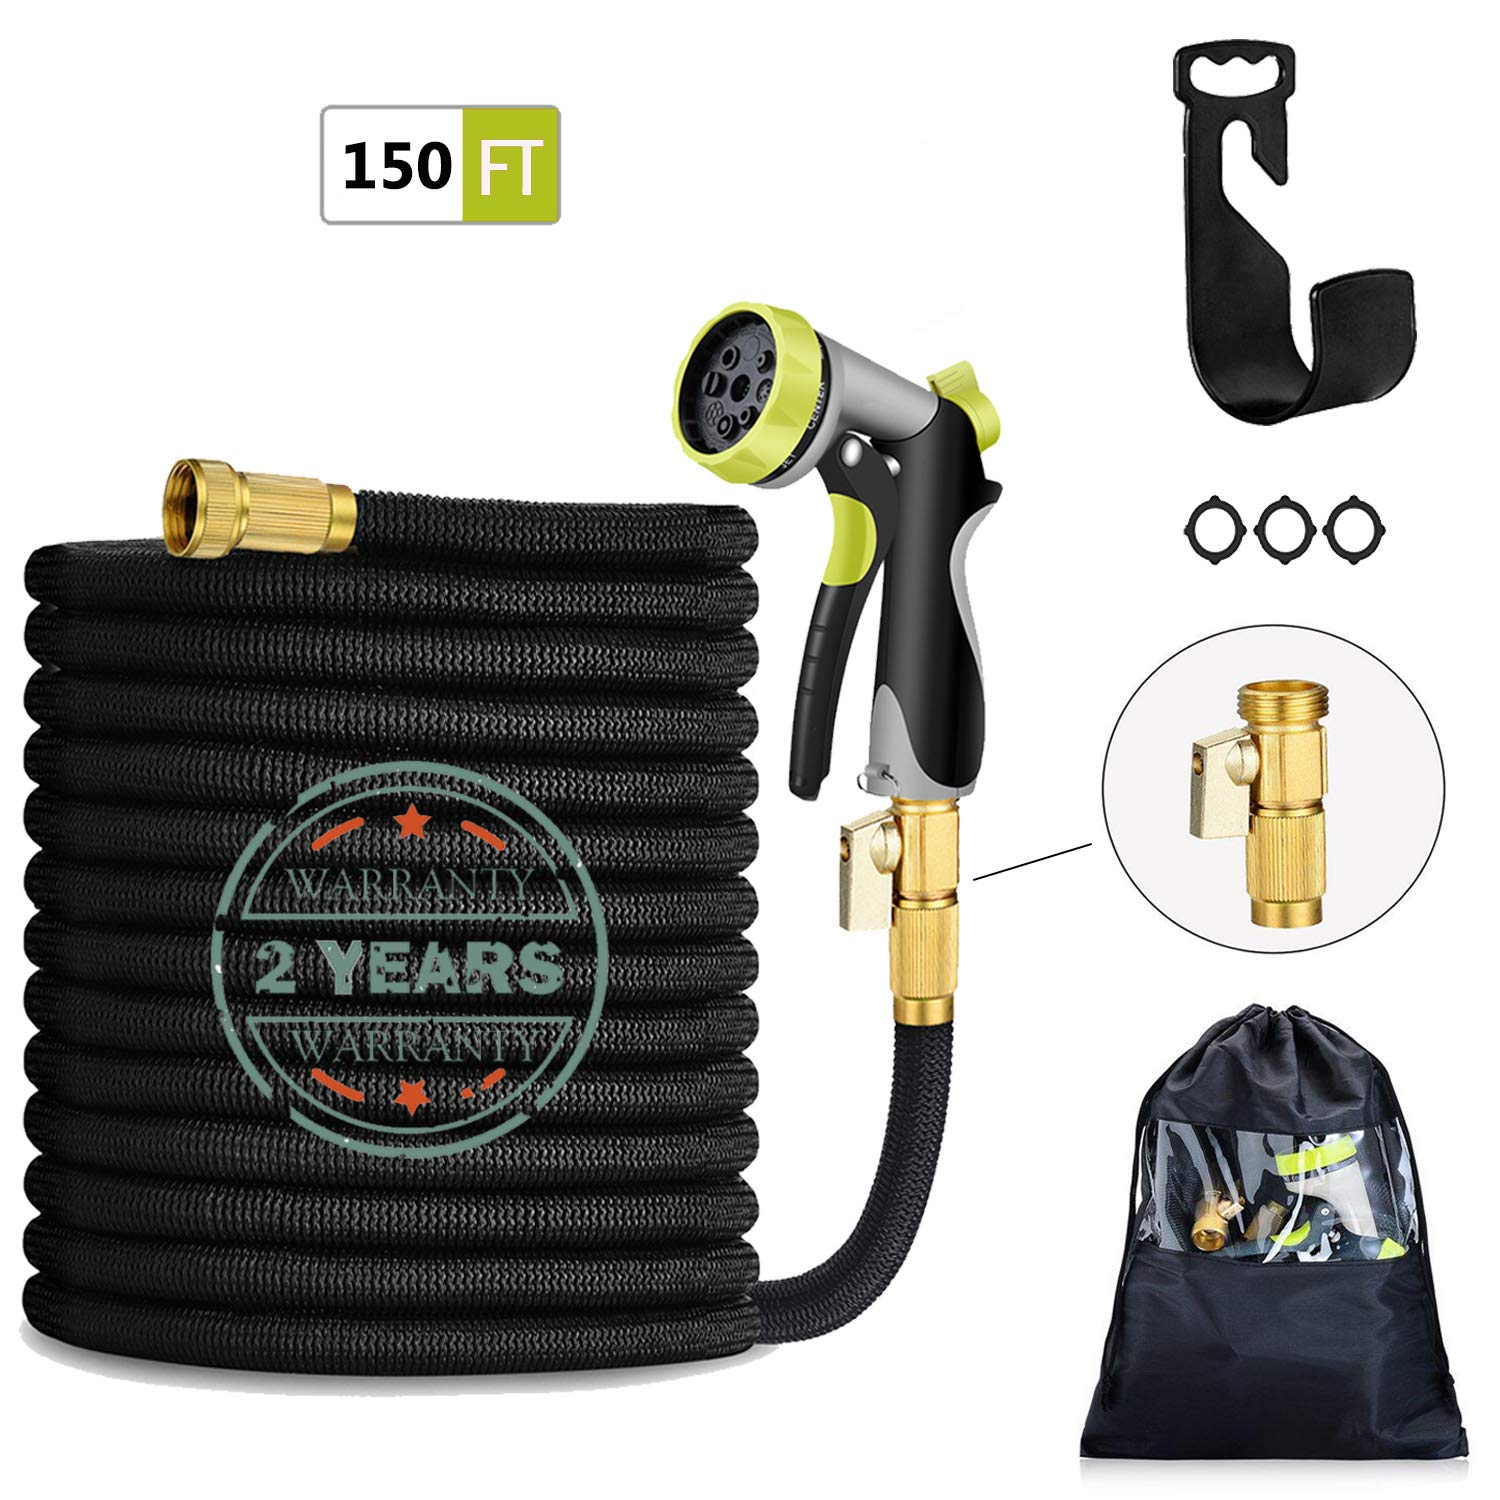 "HmiL-U 150FT Expandable Garden Hose-Strongest Water Hose with Double Latex Core, 3/4"" Solid Brass Fittings, 4-Layers Latex,3750D Extra Strength Fabric Heavy Duty 8 Adjustable Watering Patterns."